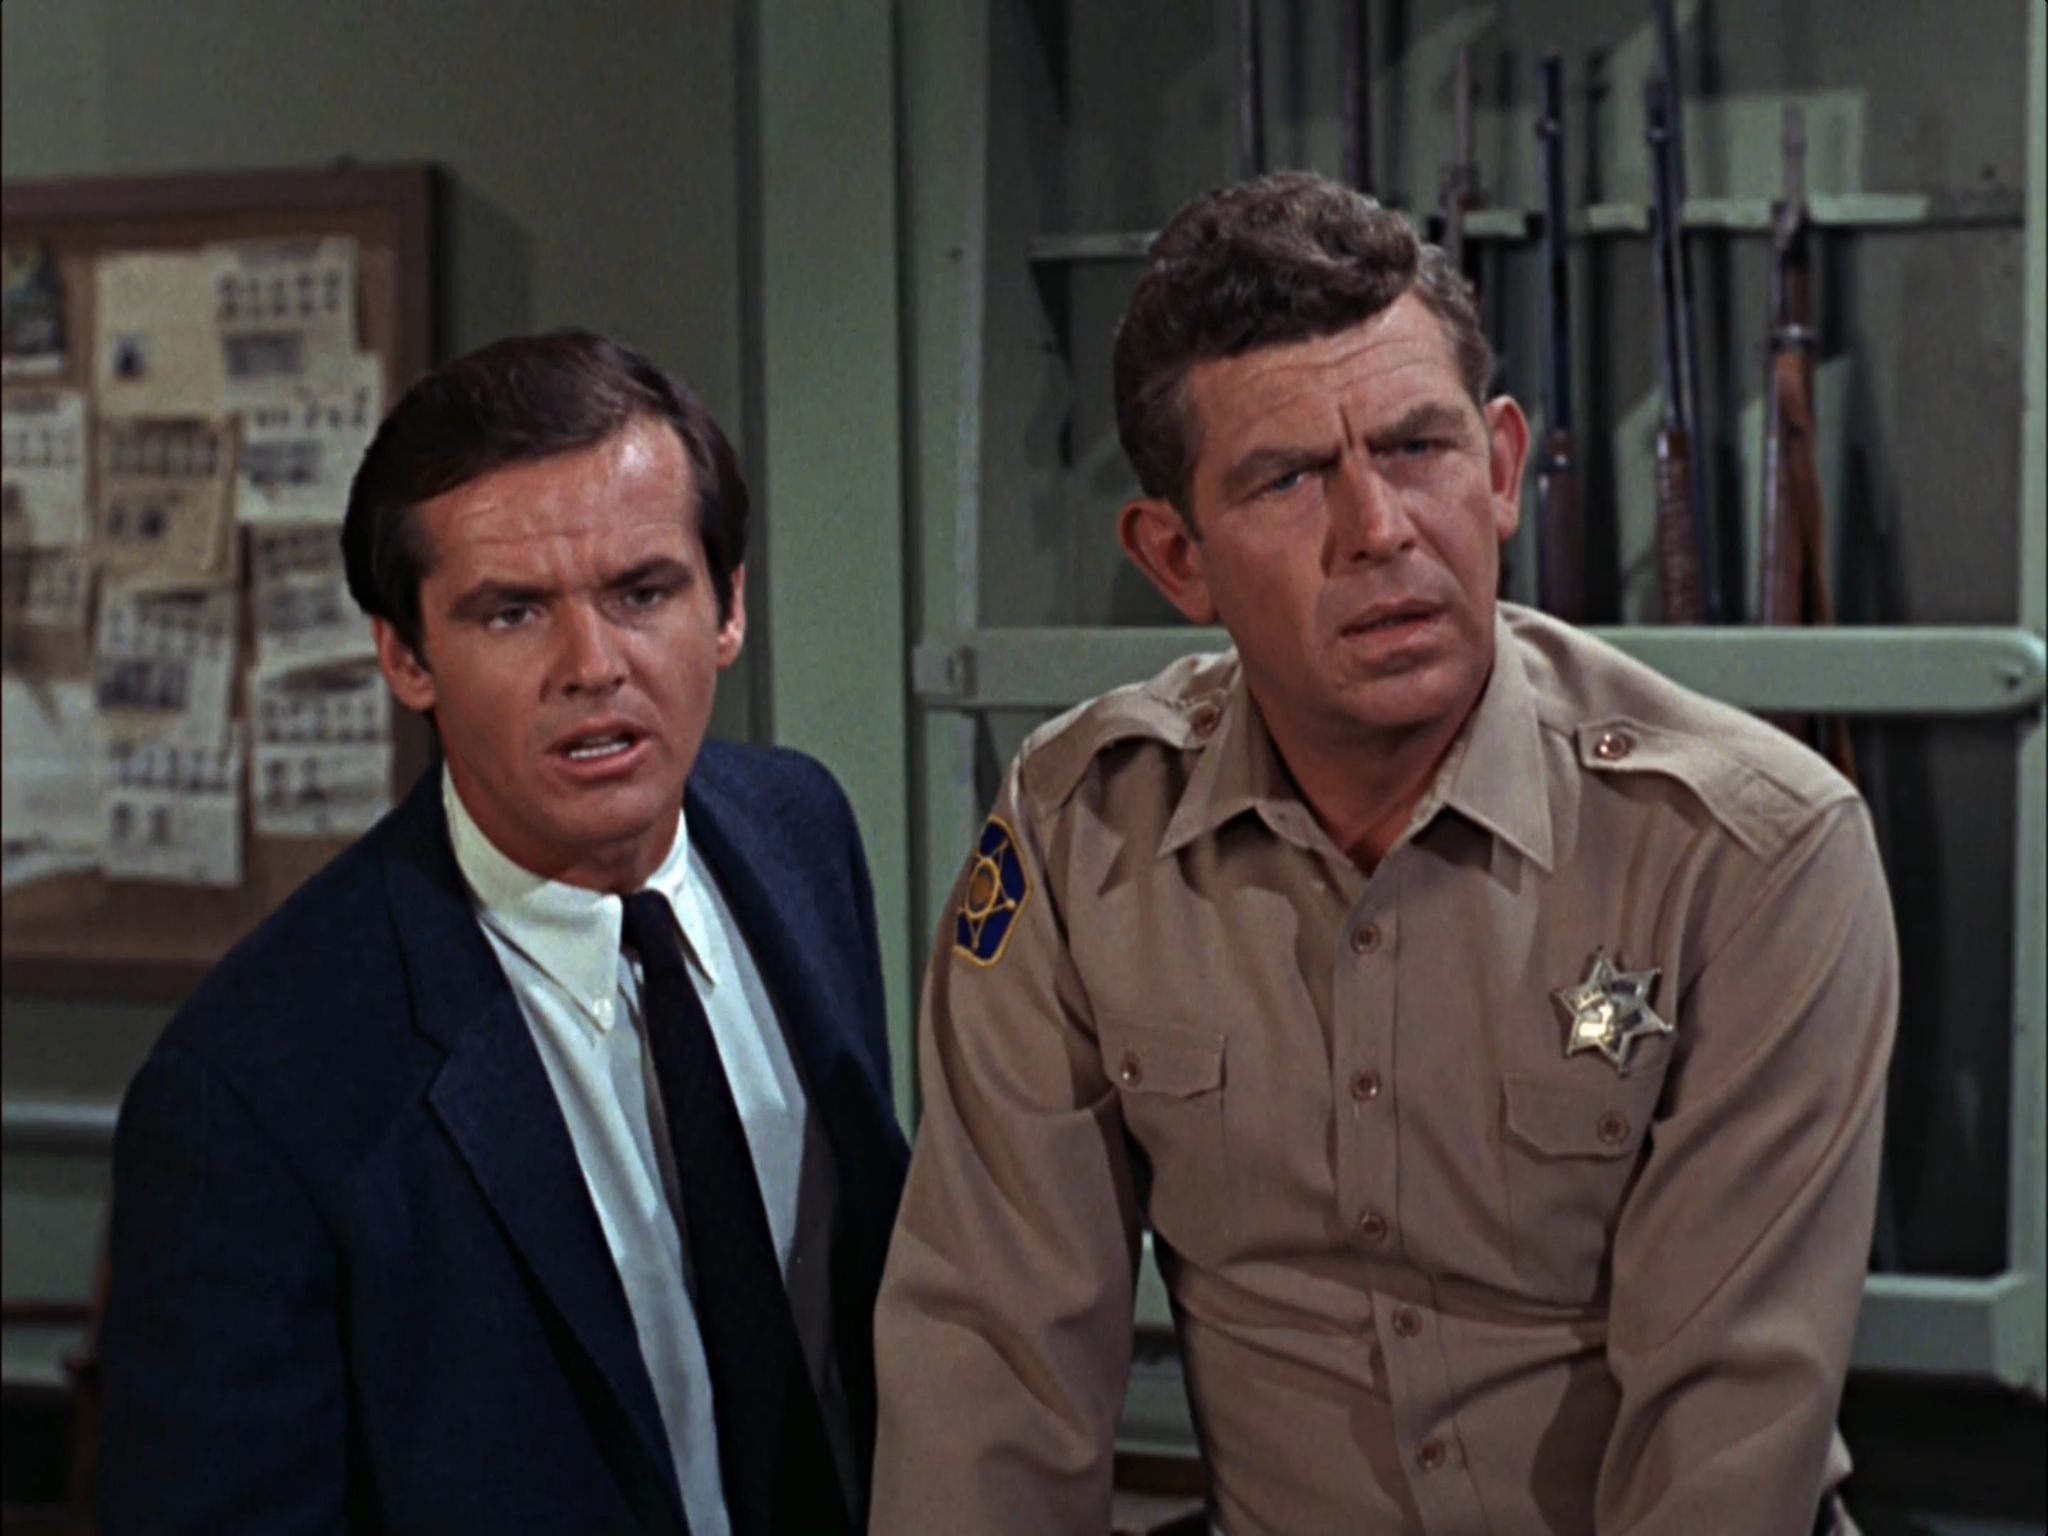 Jack Nicholson on The Andy Griffith Show | The andy griffith show, Jack  nicholson, Andy griffith